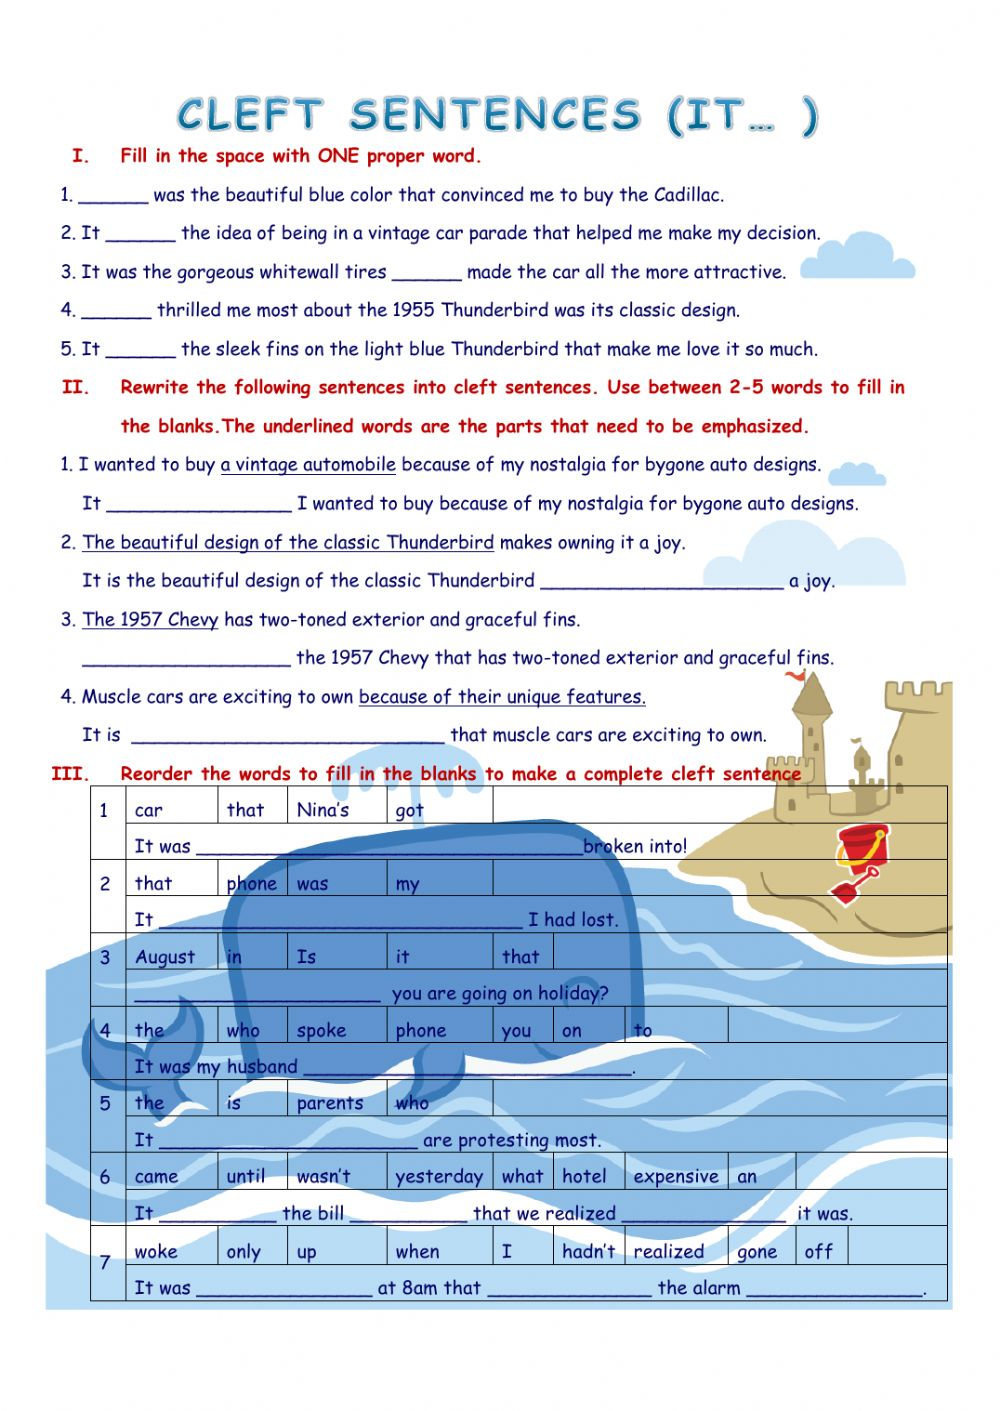 Cleft sentences (It...) - Interactive worksheet